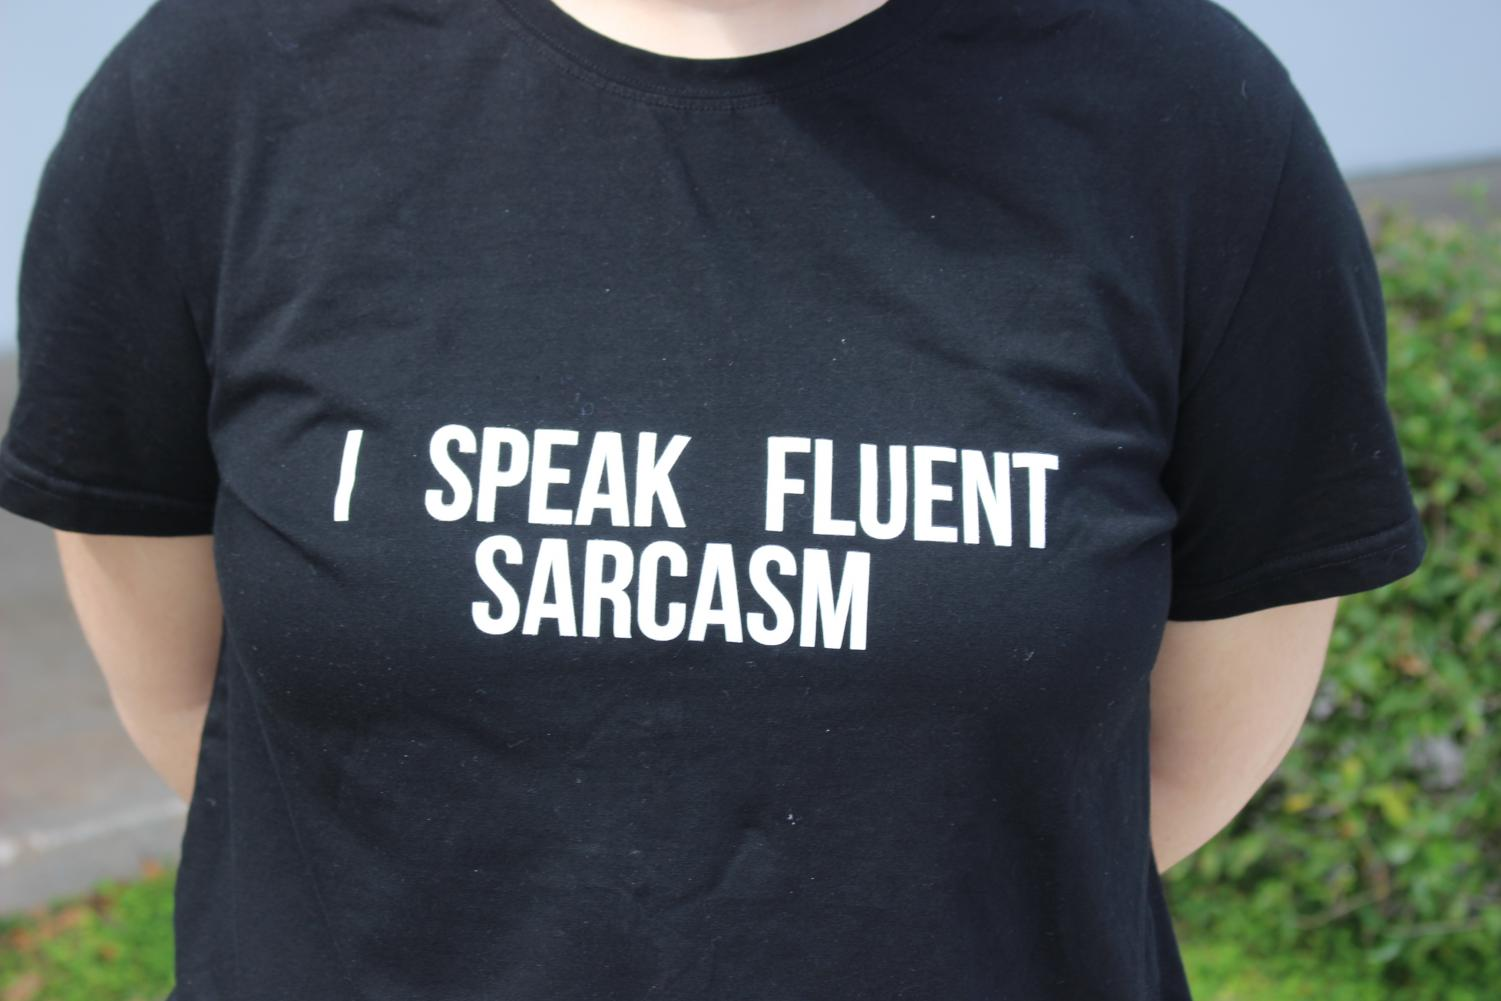 LAUGH OUT LOUD: Student wears humorous shirt on the first day of school dress down.